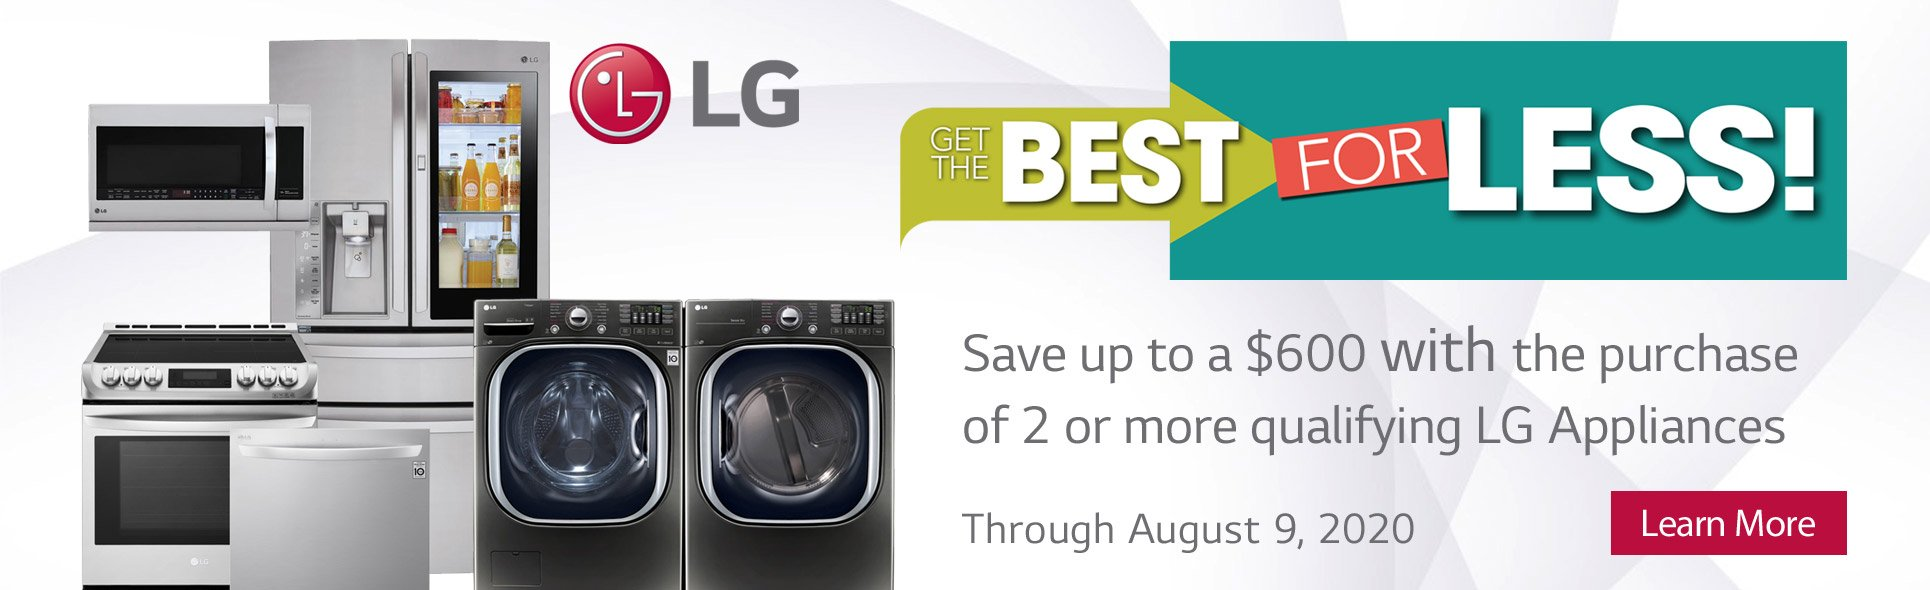 LG Best for Less